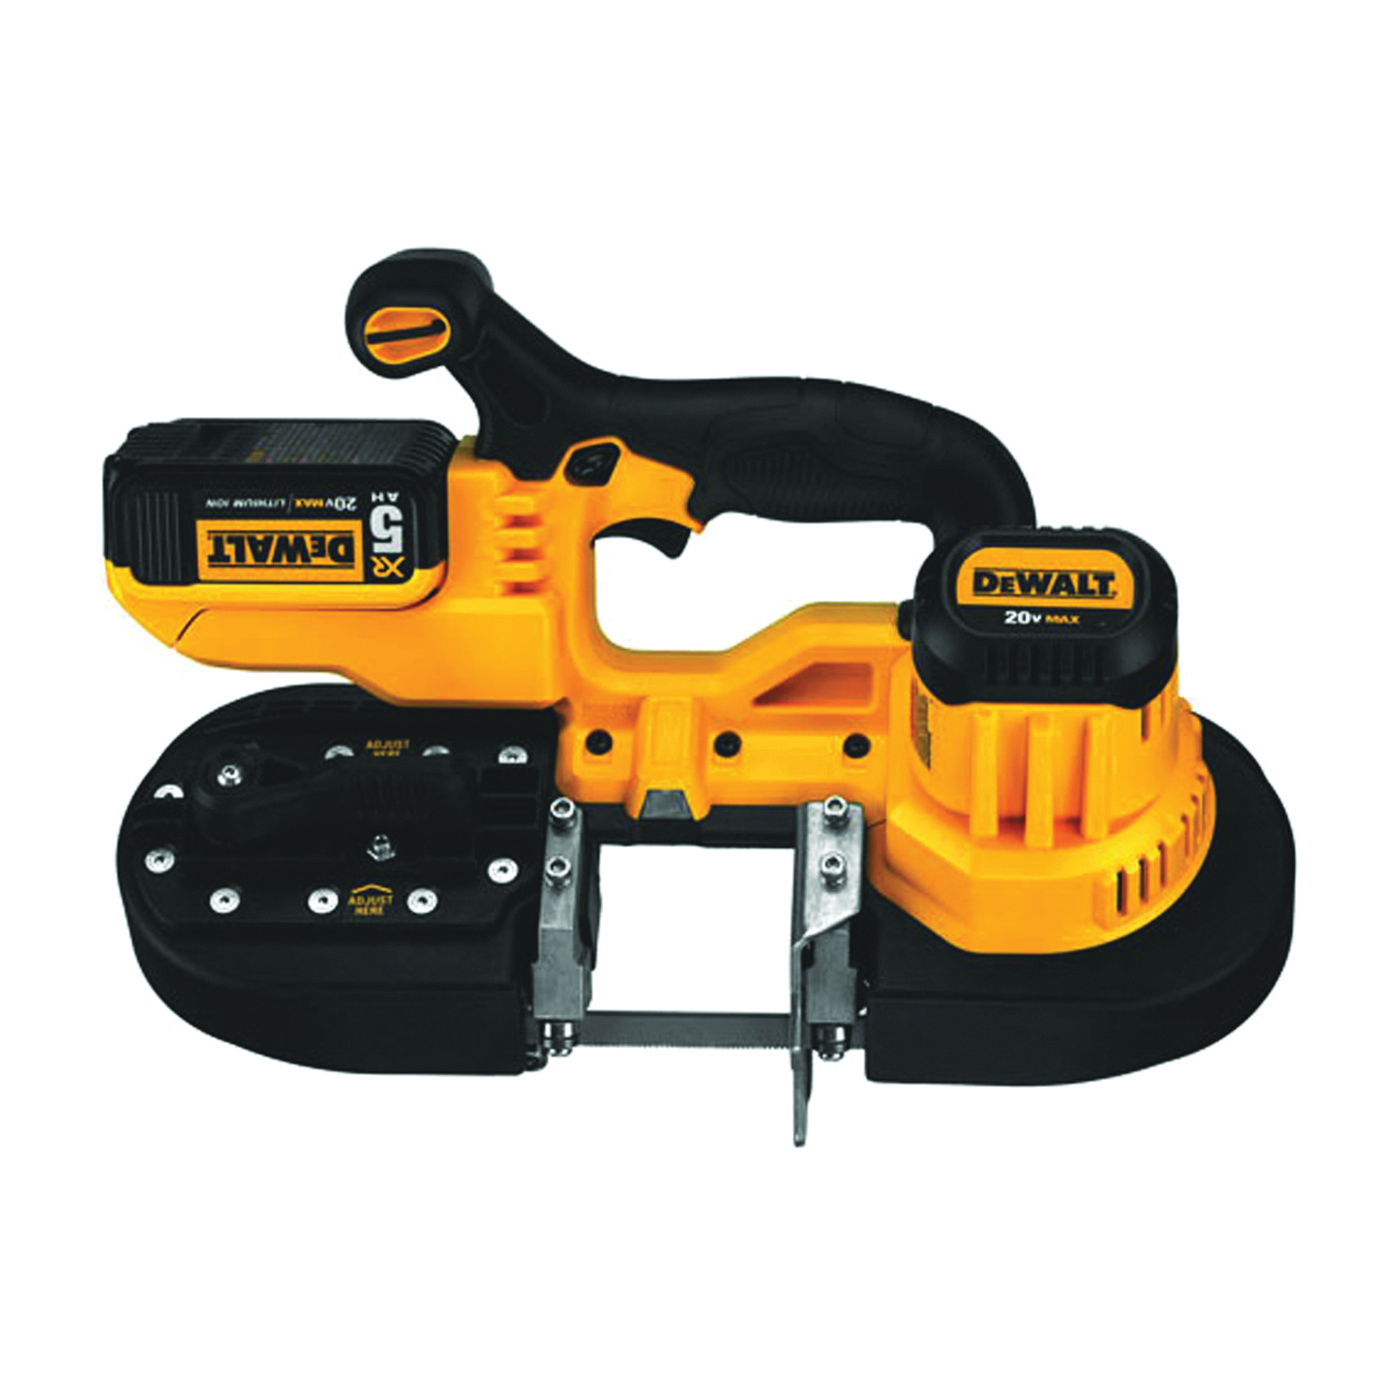 Picture of DeWALT DCS371P1 Band Saw Kit, 20 V, 32-7/8 in L Blade, 2-1/2 in Cutting Capacity, 570 fpm Speed